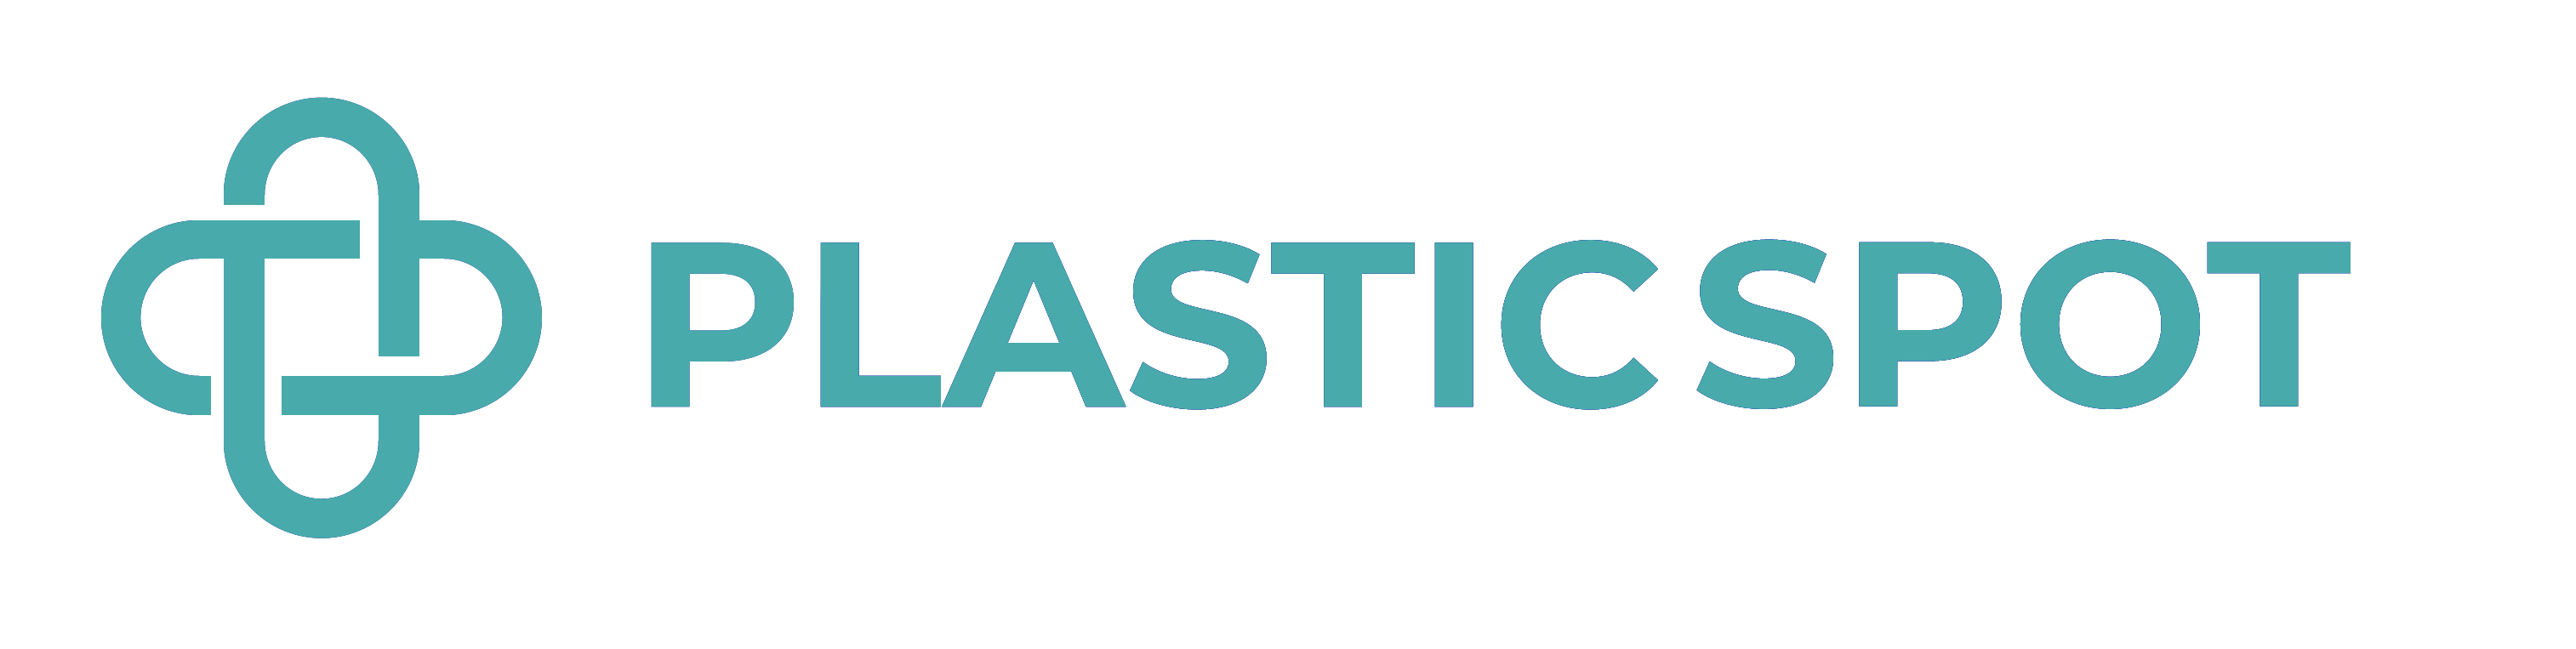 PlasticSpot: Plastic Surgery and the Best Plastic Surgeons in your City